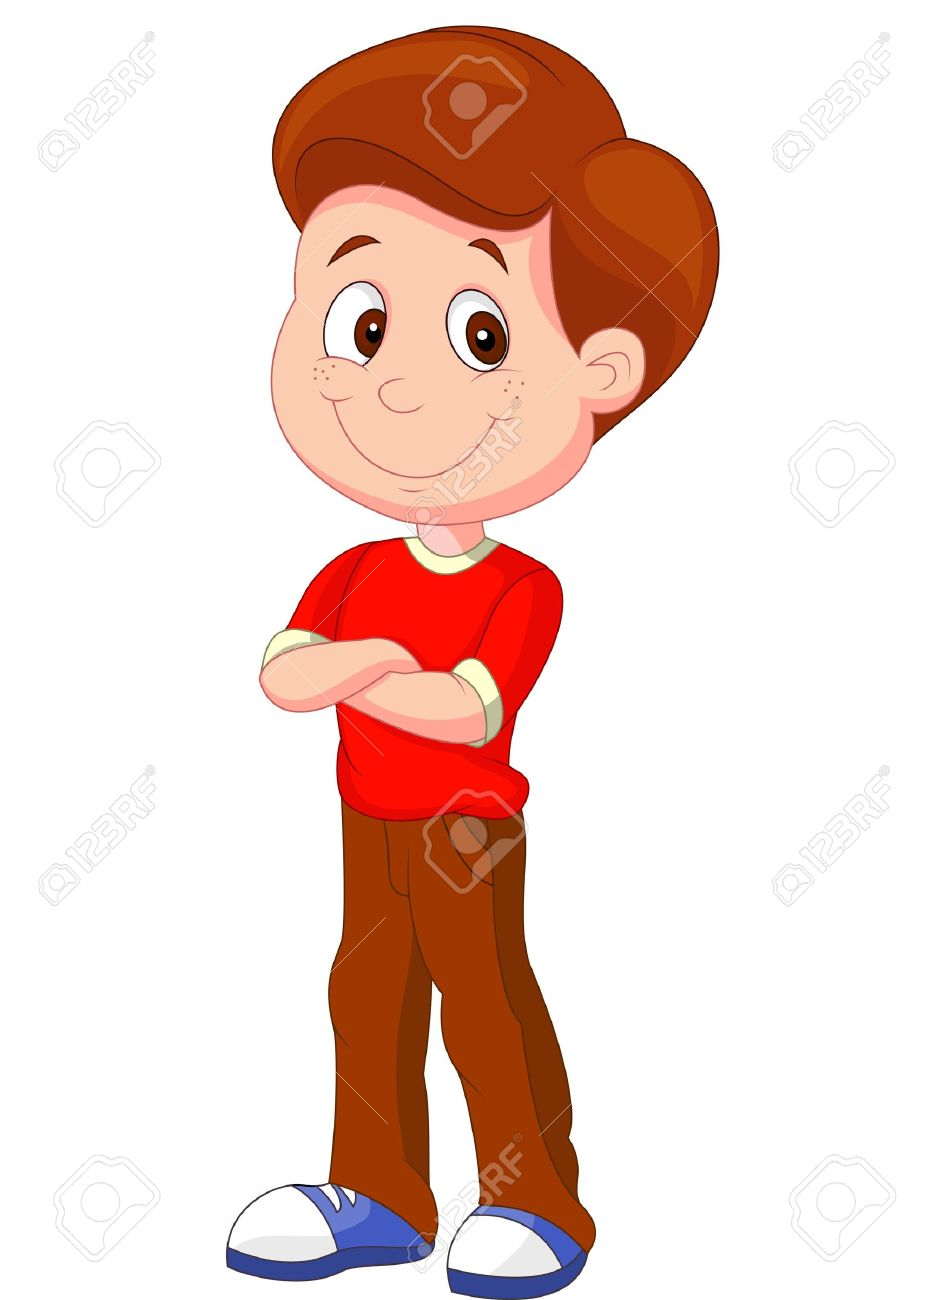 Boy Cartoon Images : cartoon, images, Cartoon, Standing, Royalty, Cliparts,, Vectors,, Stock, Illustration., Image, 20754296.